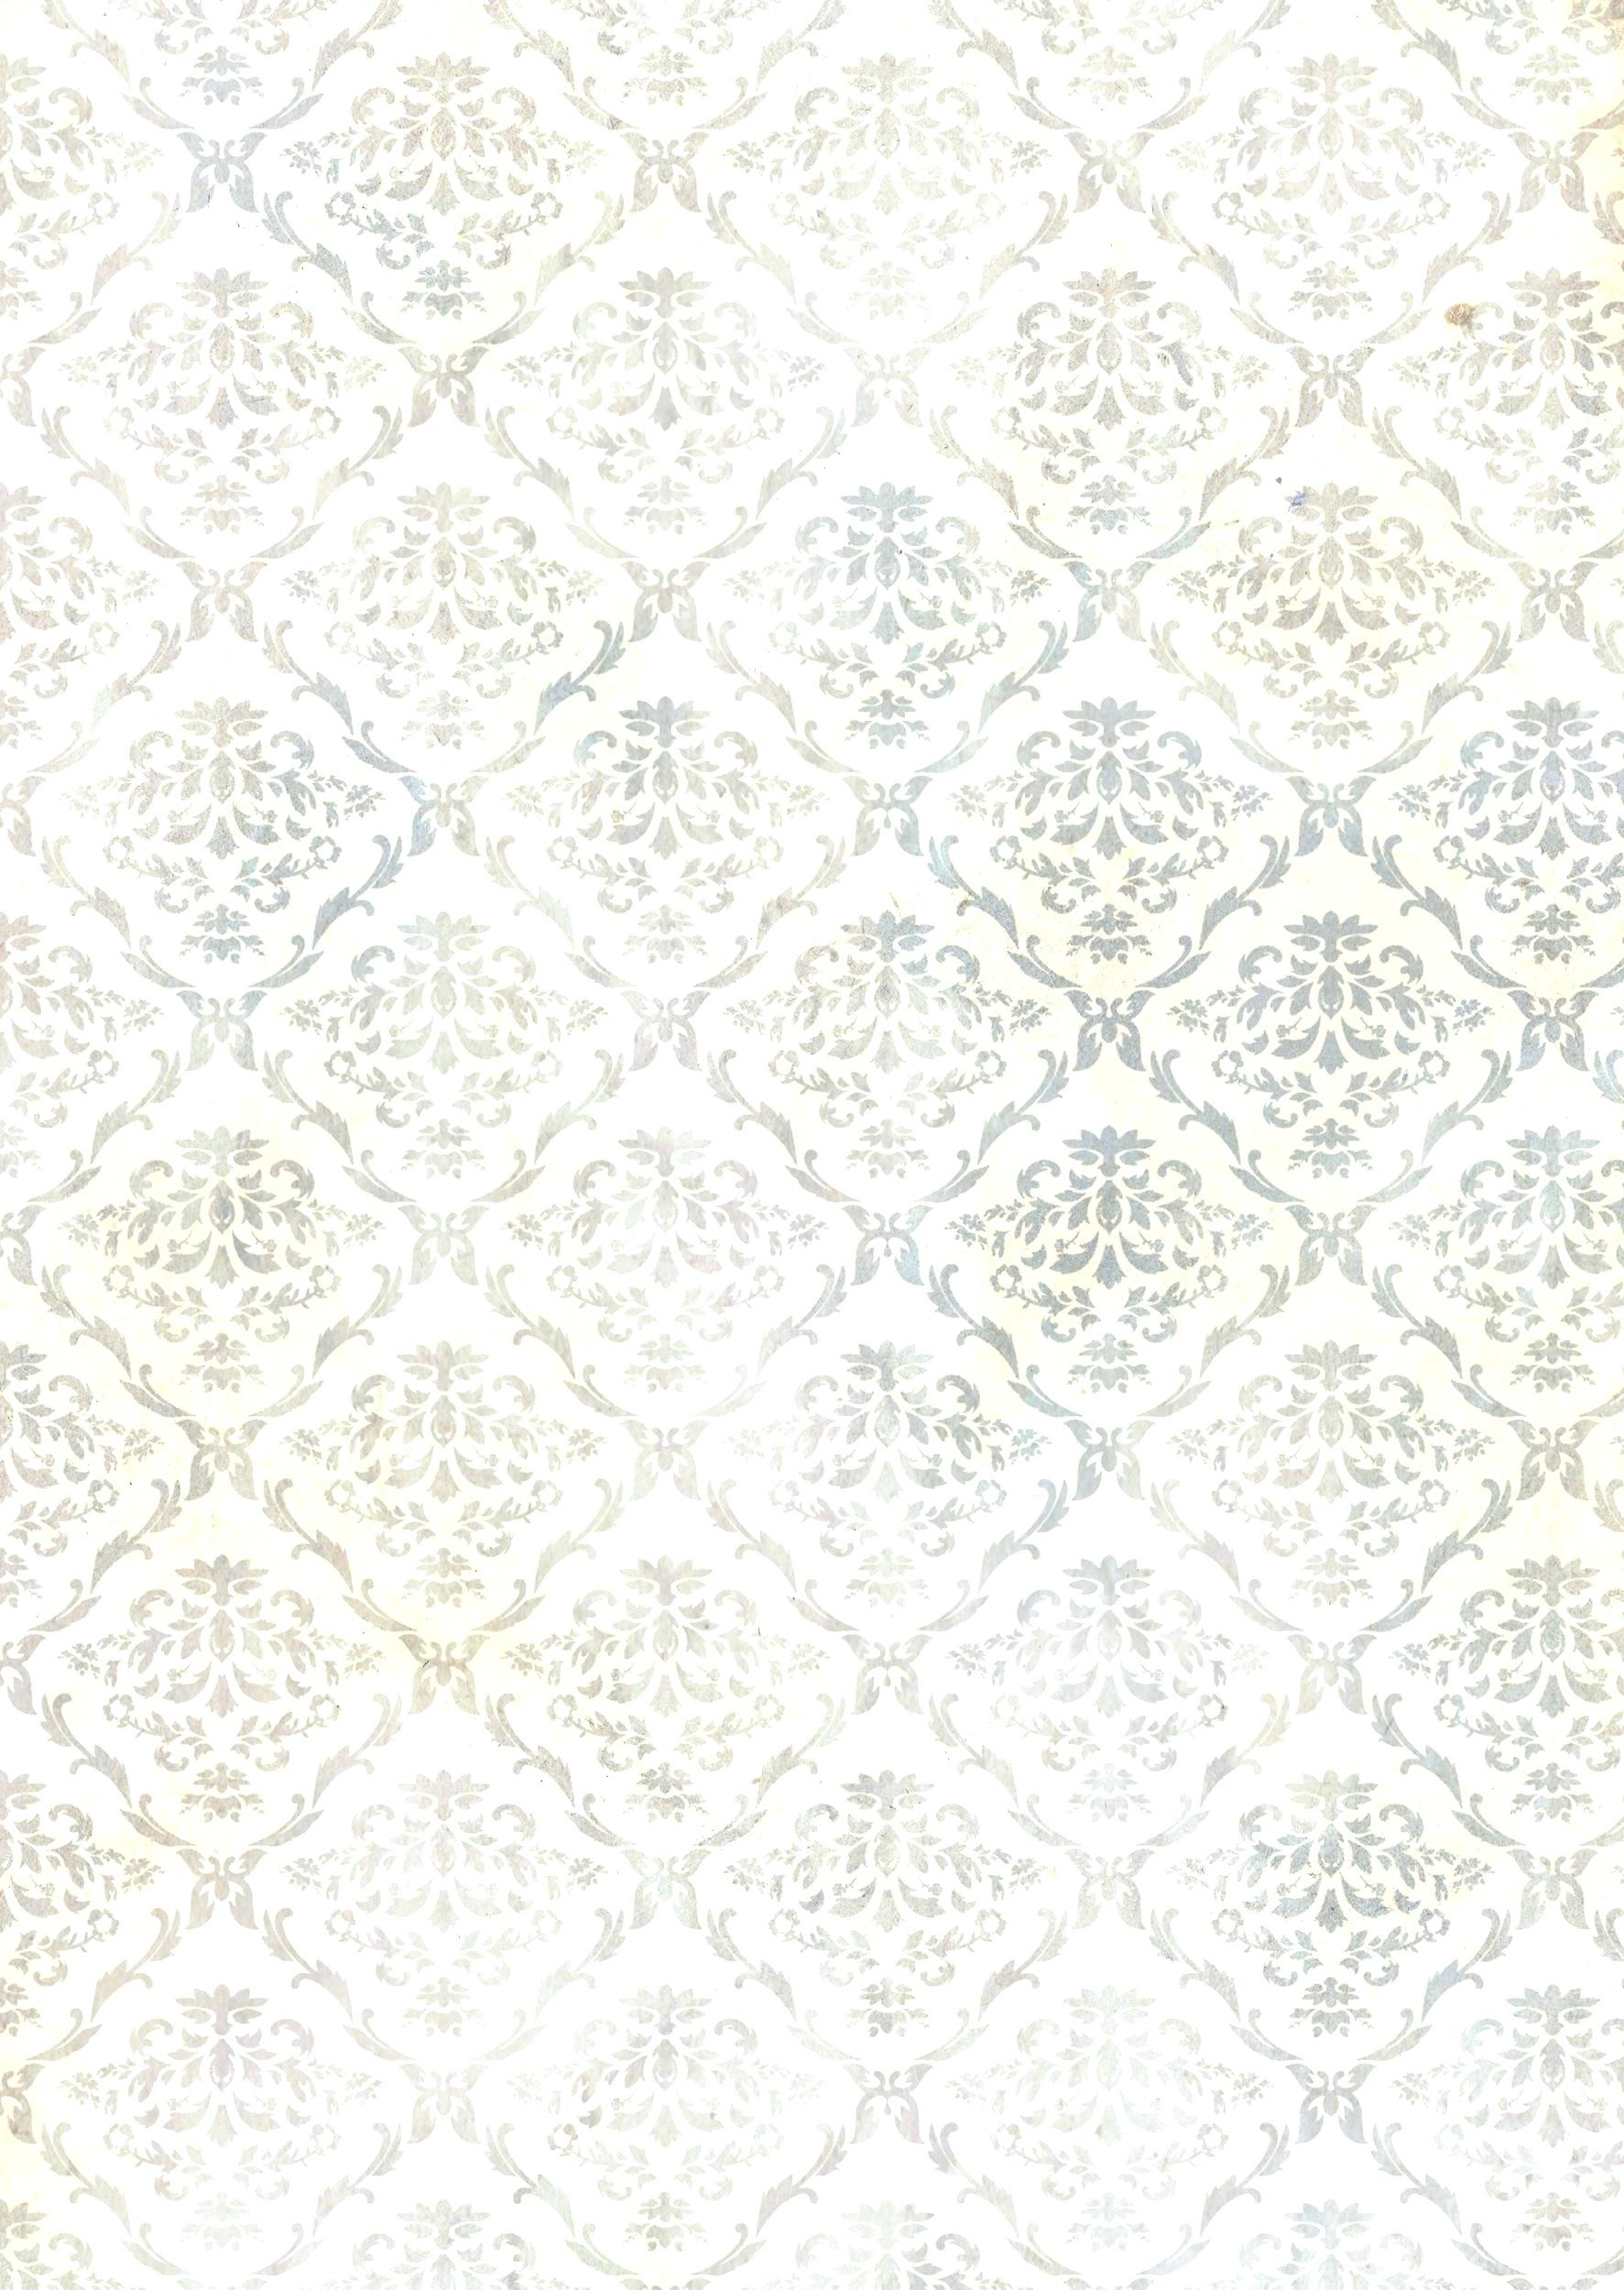 Dollhouse Wallpapers - Wallpaper Cave - Free Printable Wallpaper Patterns